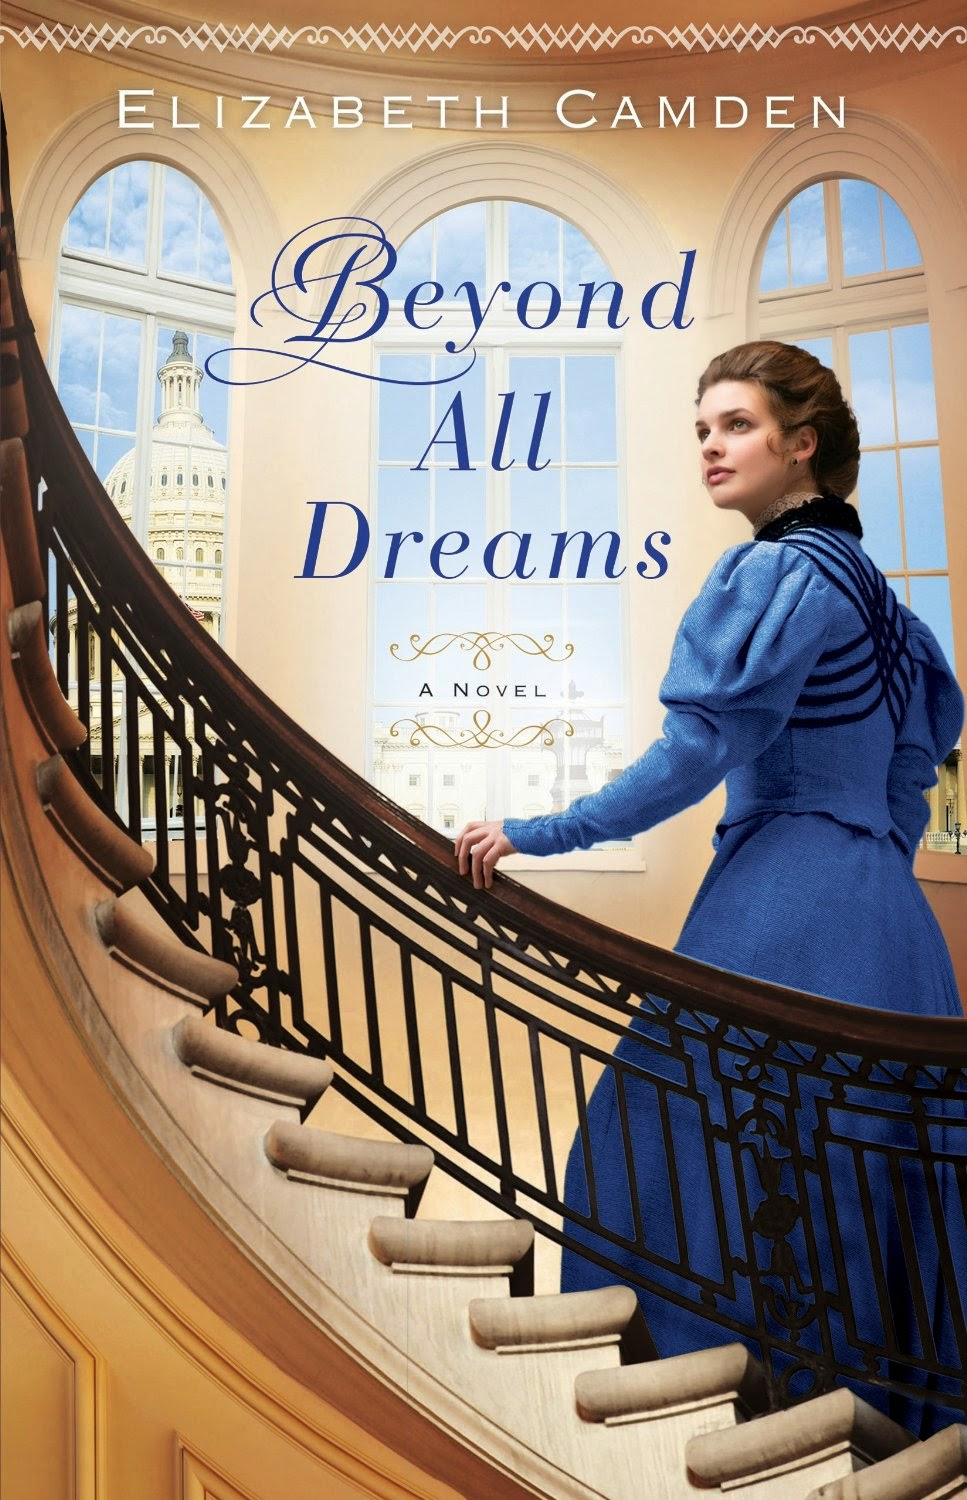 Silver dreams marisol - Brenda Silver Dreams Librarian At The Illustrious Library Of Congress Until She Stumbles Across The